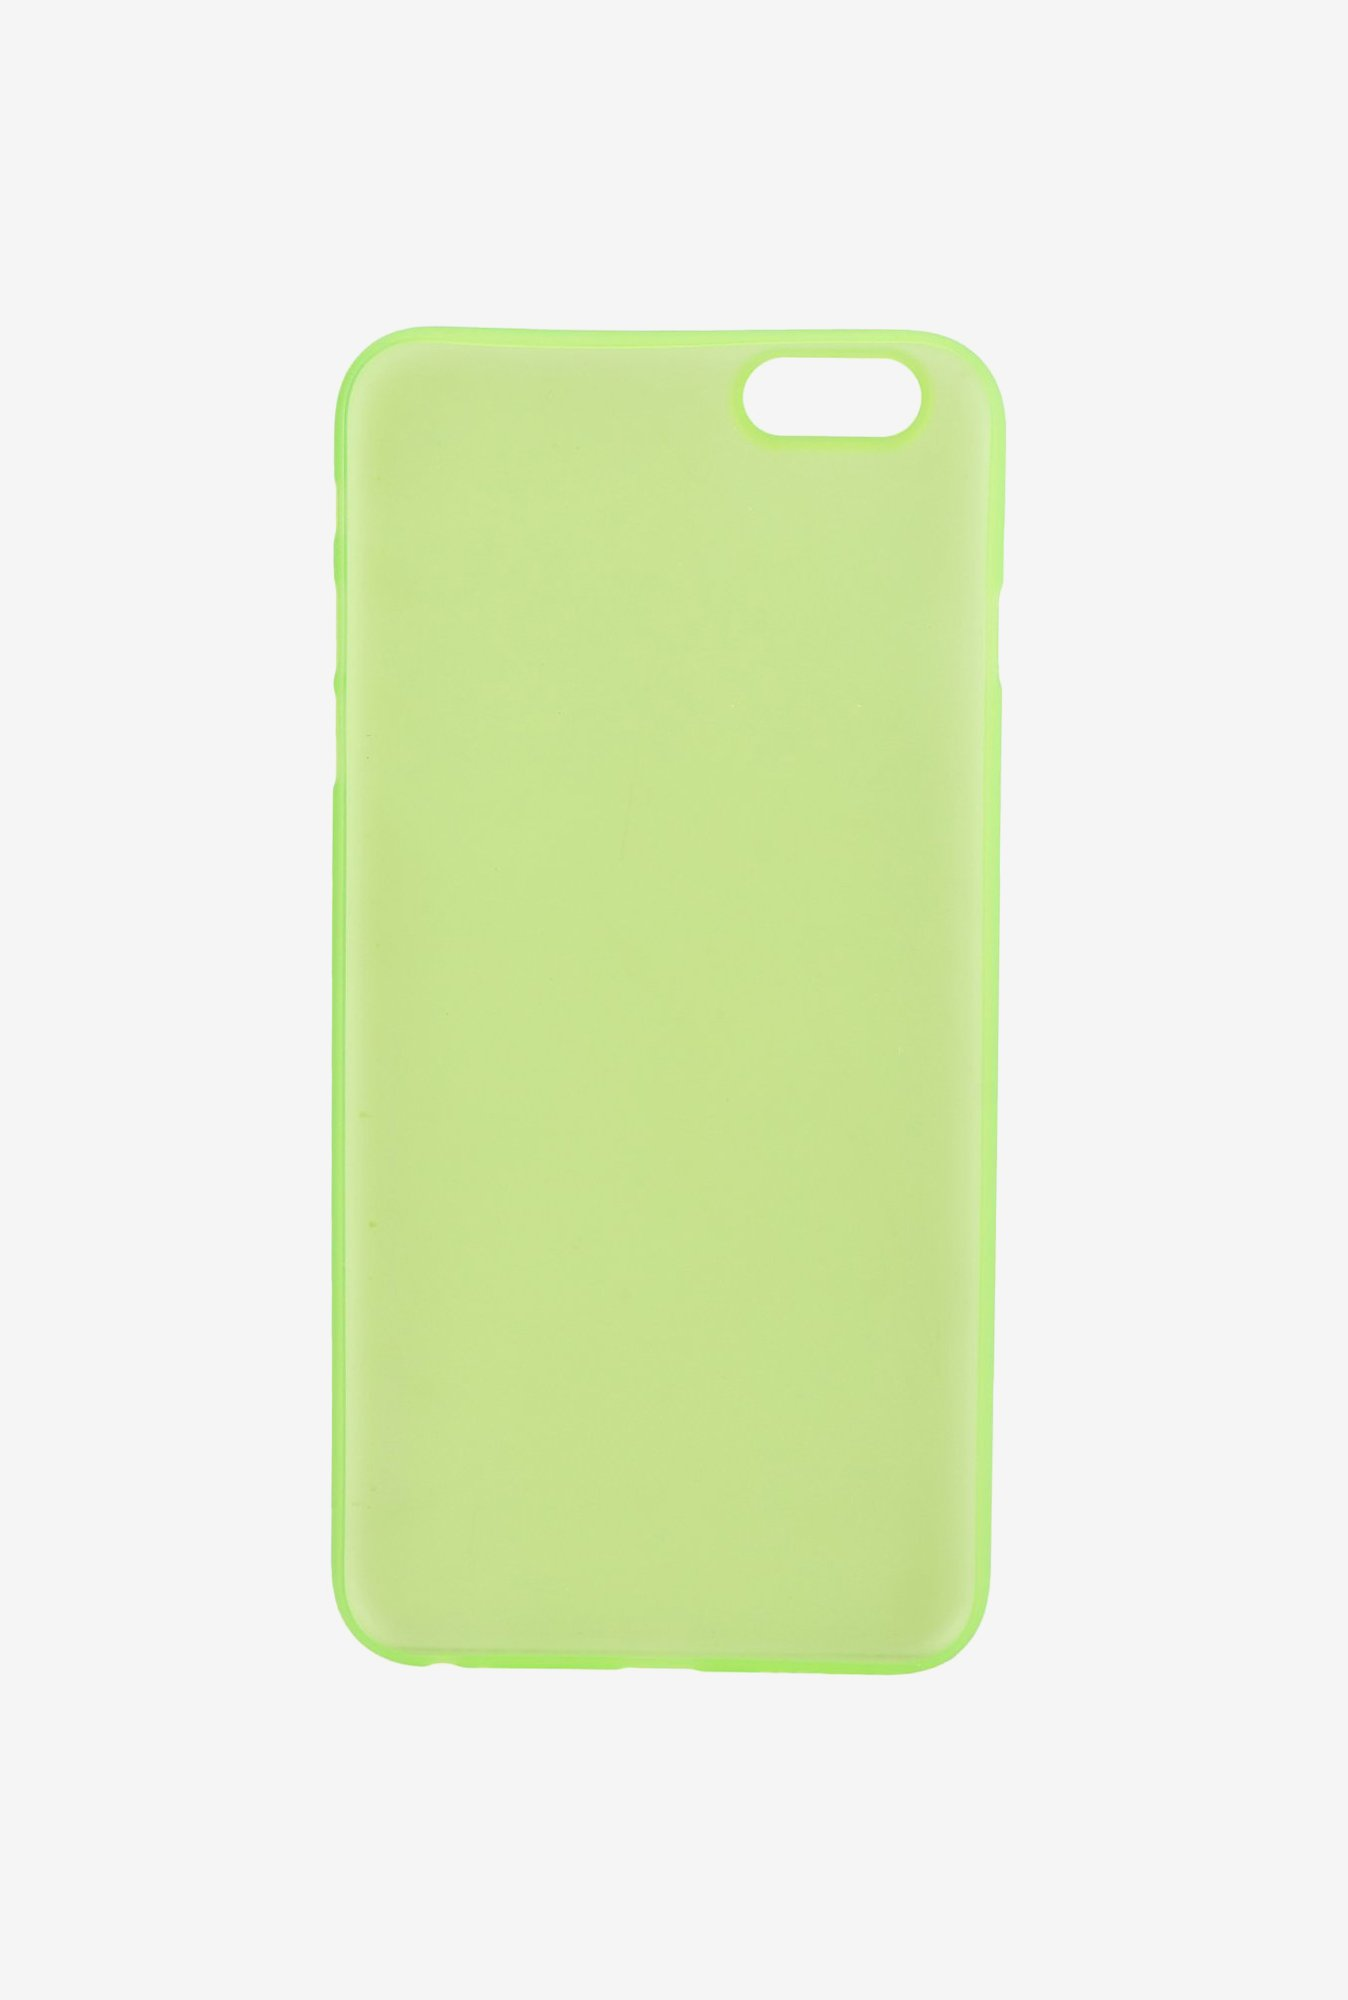 Memumi Ultra Thin Back Cover for iPhone 6 Plus (Green)